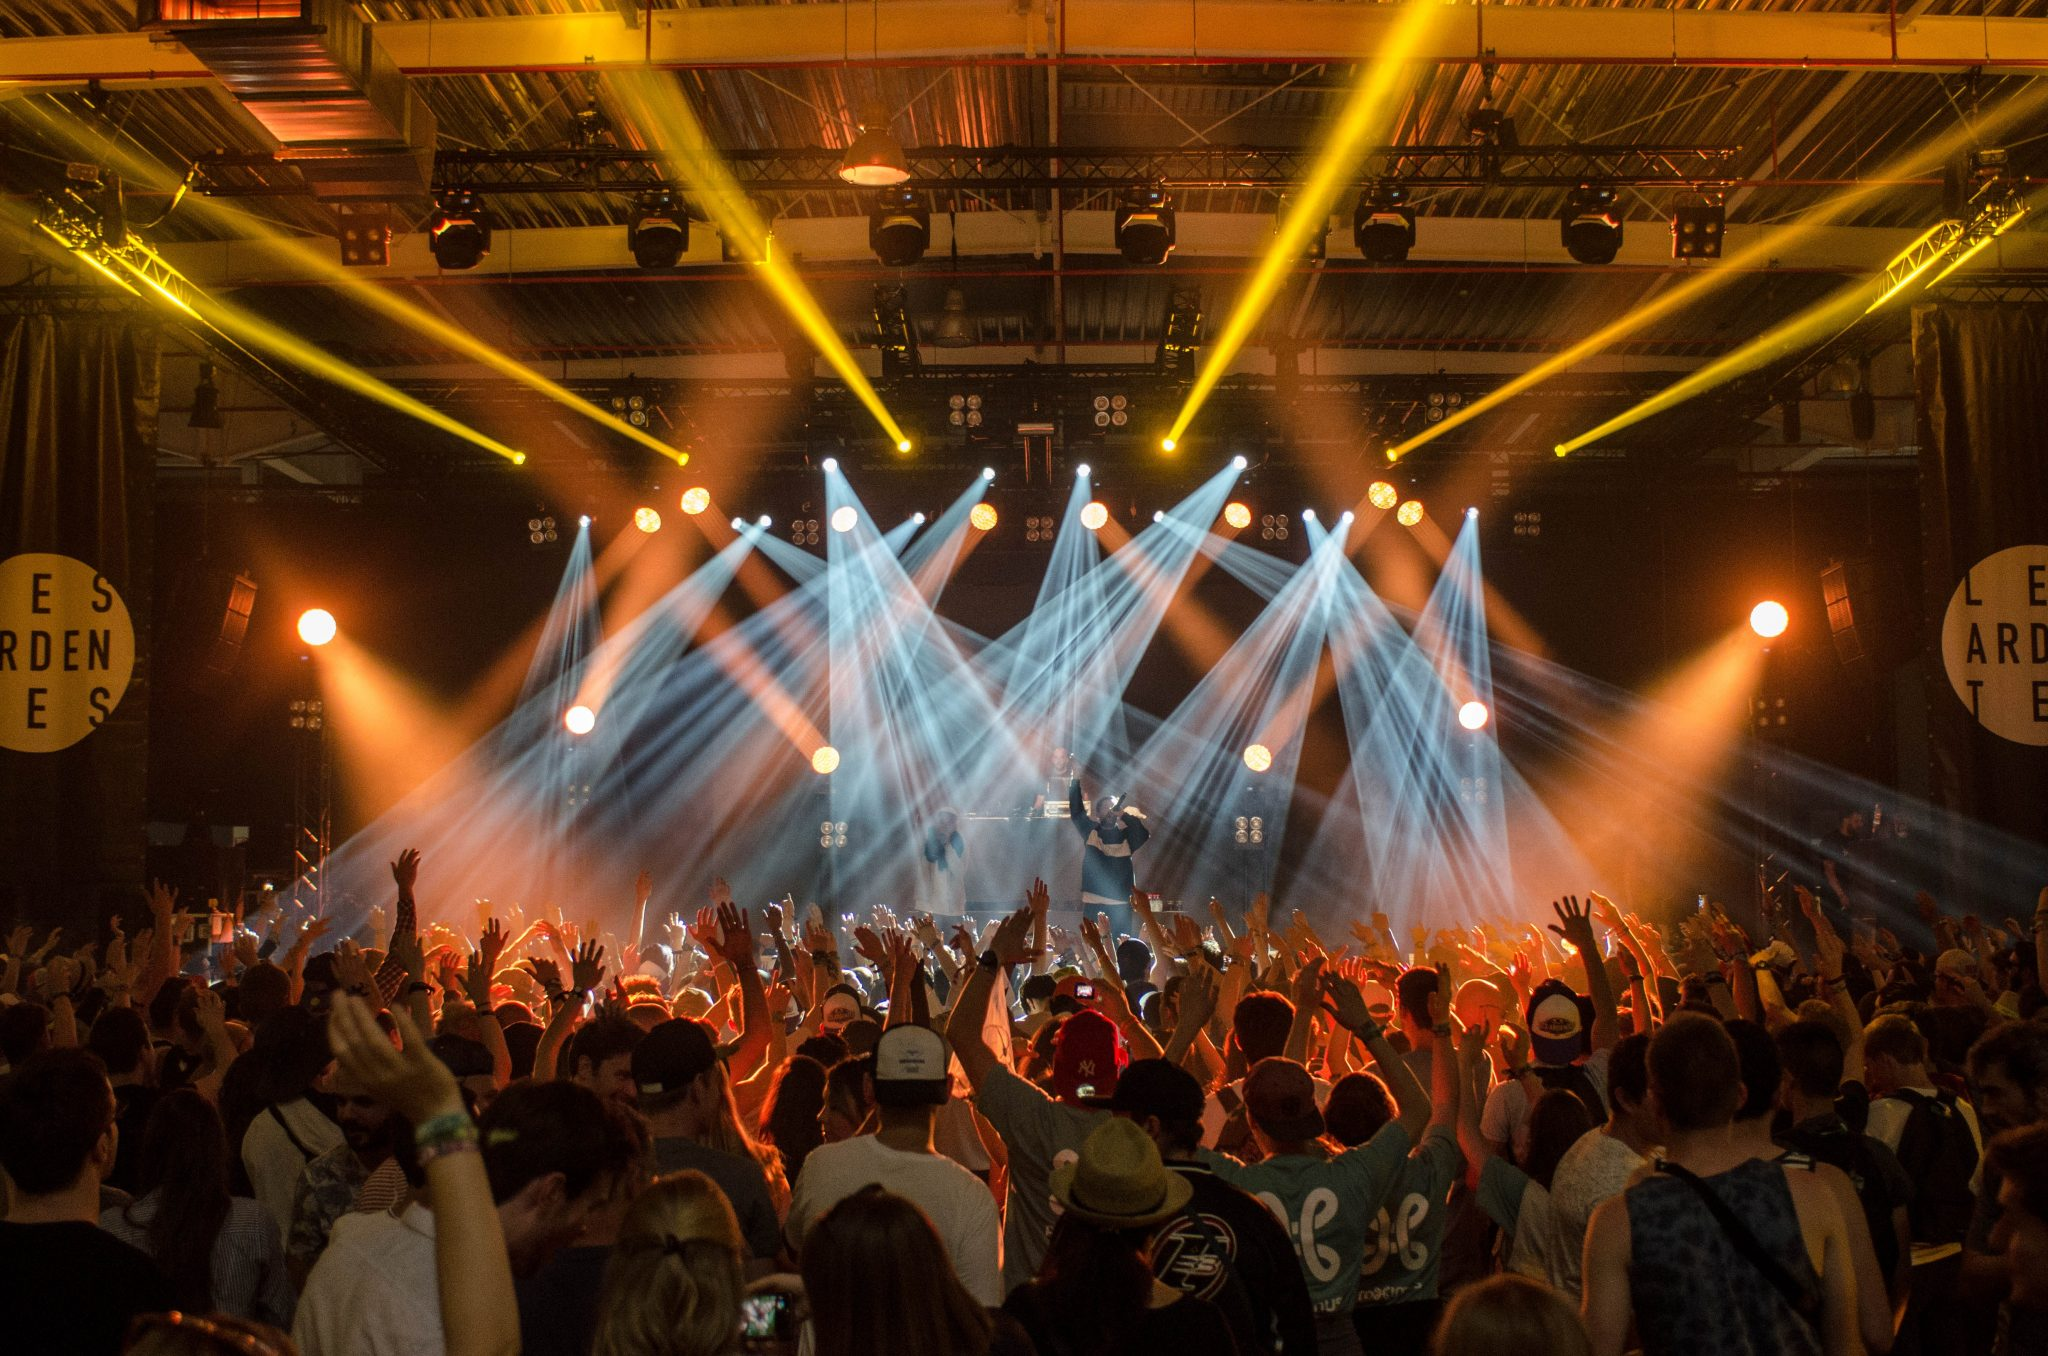 live music concert with lights and crowd